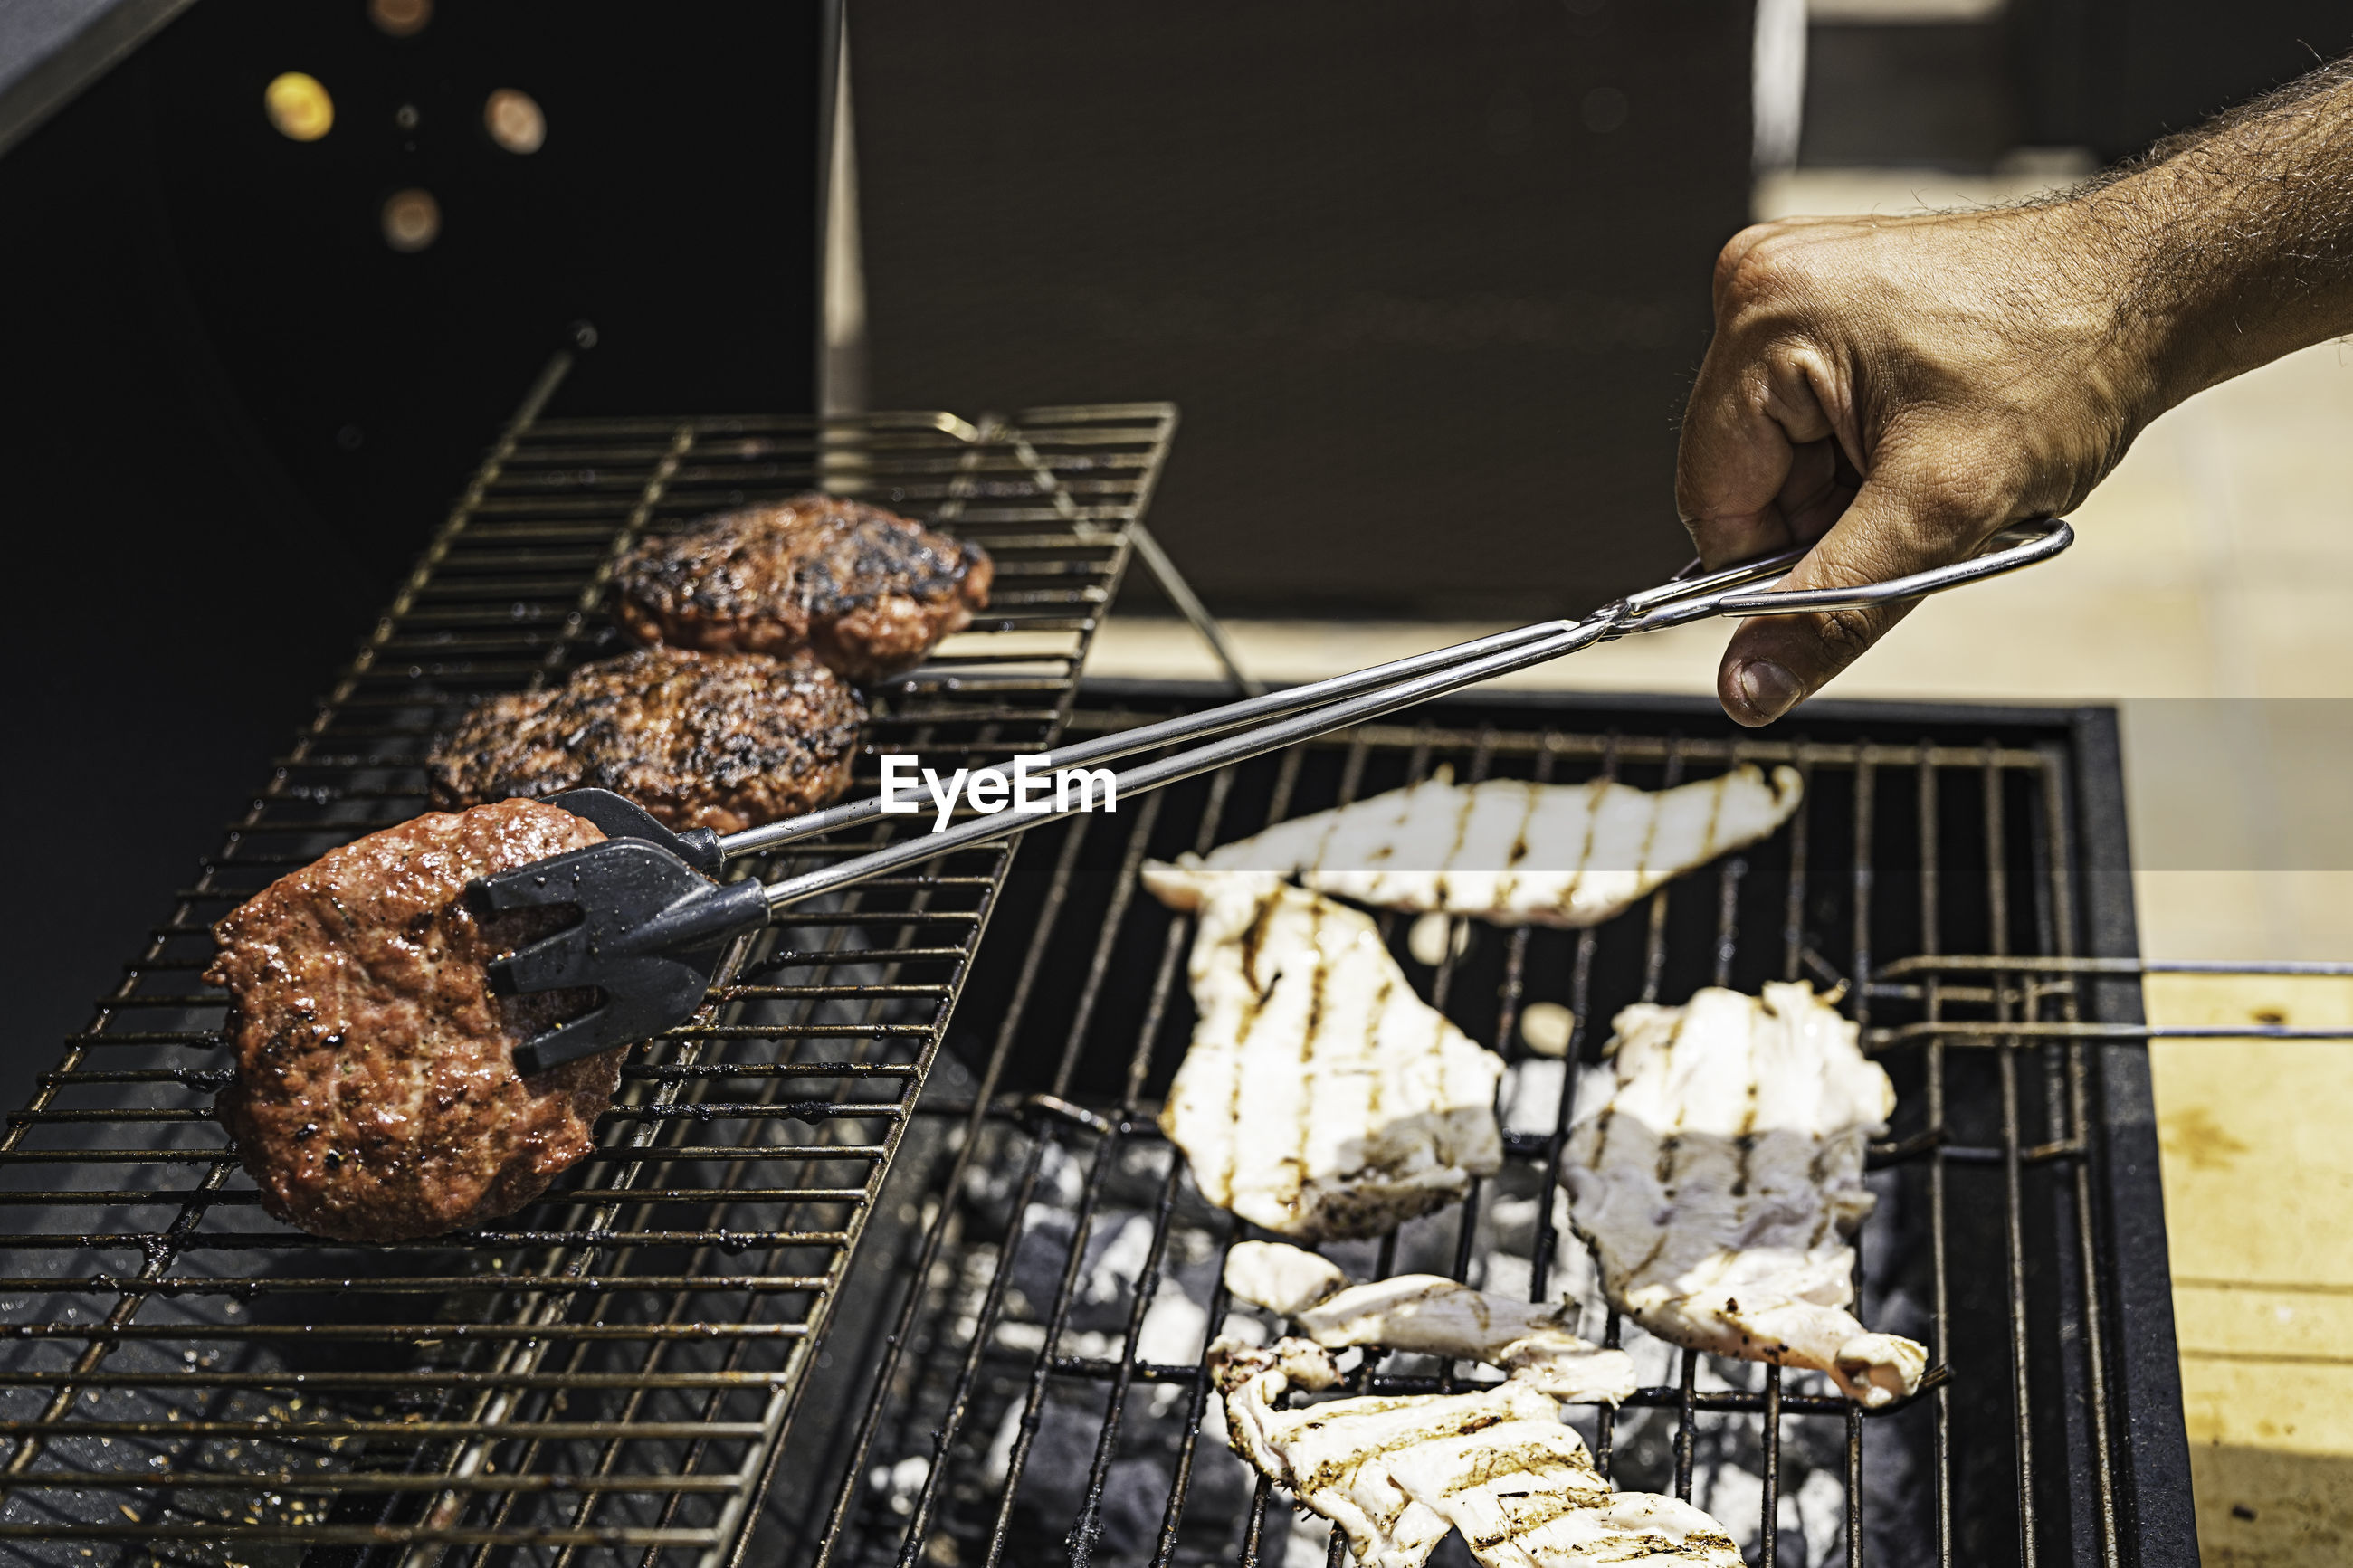 PERSON HOLDING MEAT ON BARBECUE GRILL AT NIGHT